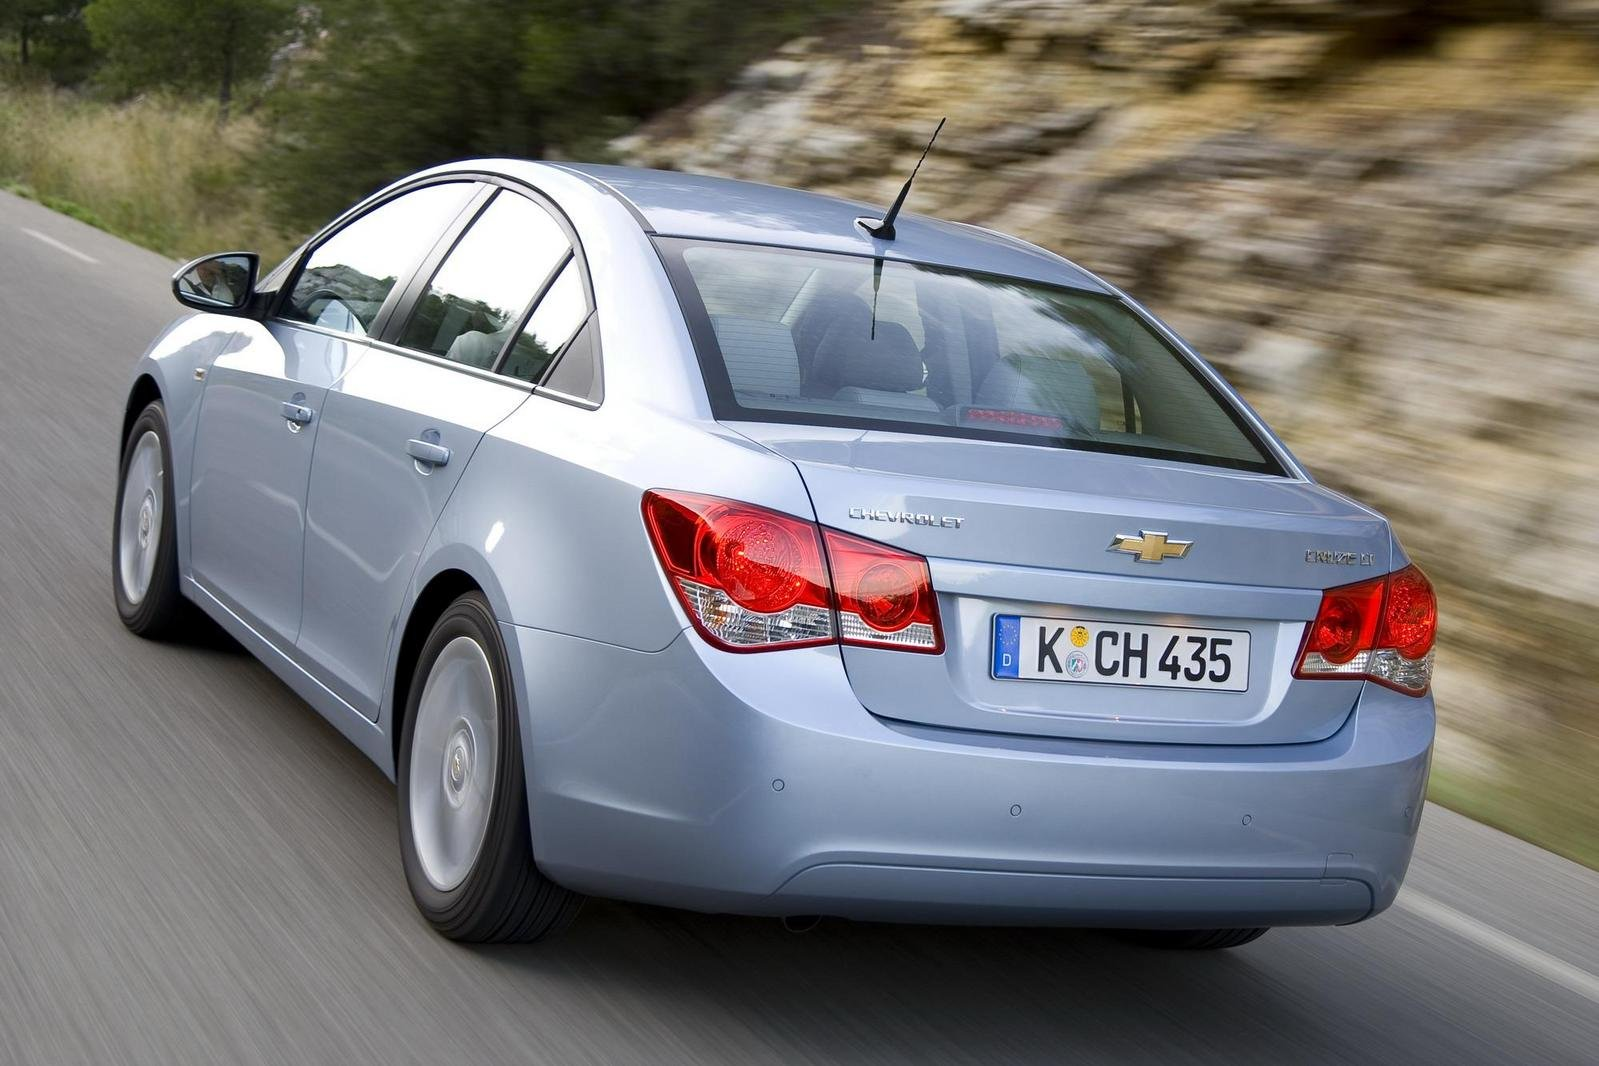 http://pictures.topspeed.com/IMG/crop/200903/2010-chevrolet-cruze-1_1600x0w.jpg